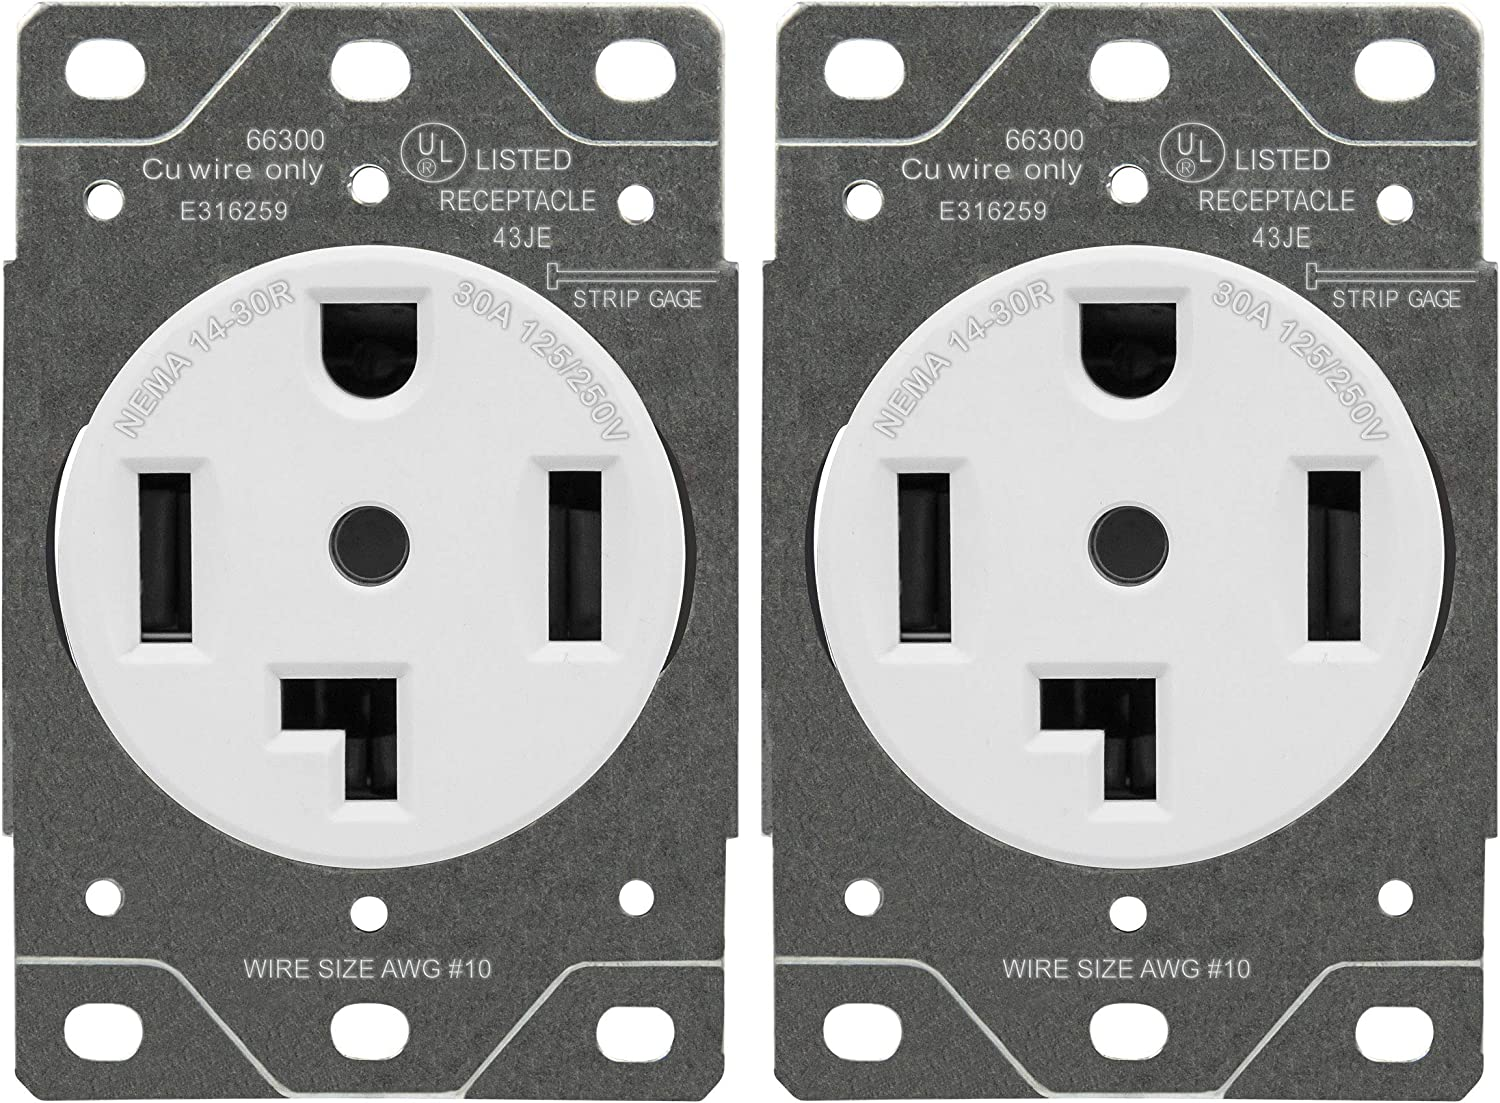 ENERLITES 30 Amp Dryer Receptacle Outlet, NEMA 14-30R | Residential Commercial Industrial Grade, Outdoor/Indoor, 3-Pole, 4 Wire, (10,8,6,4) AWG, | 125/250V, 66300-W, 2 Pack - White